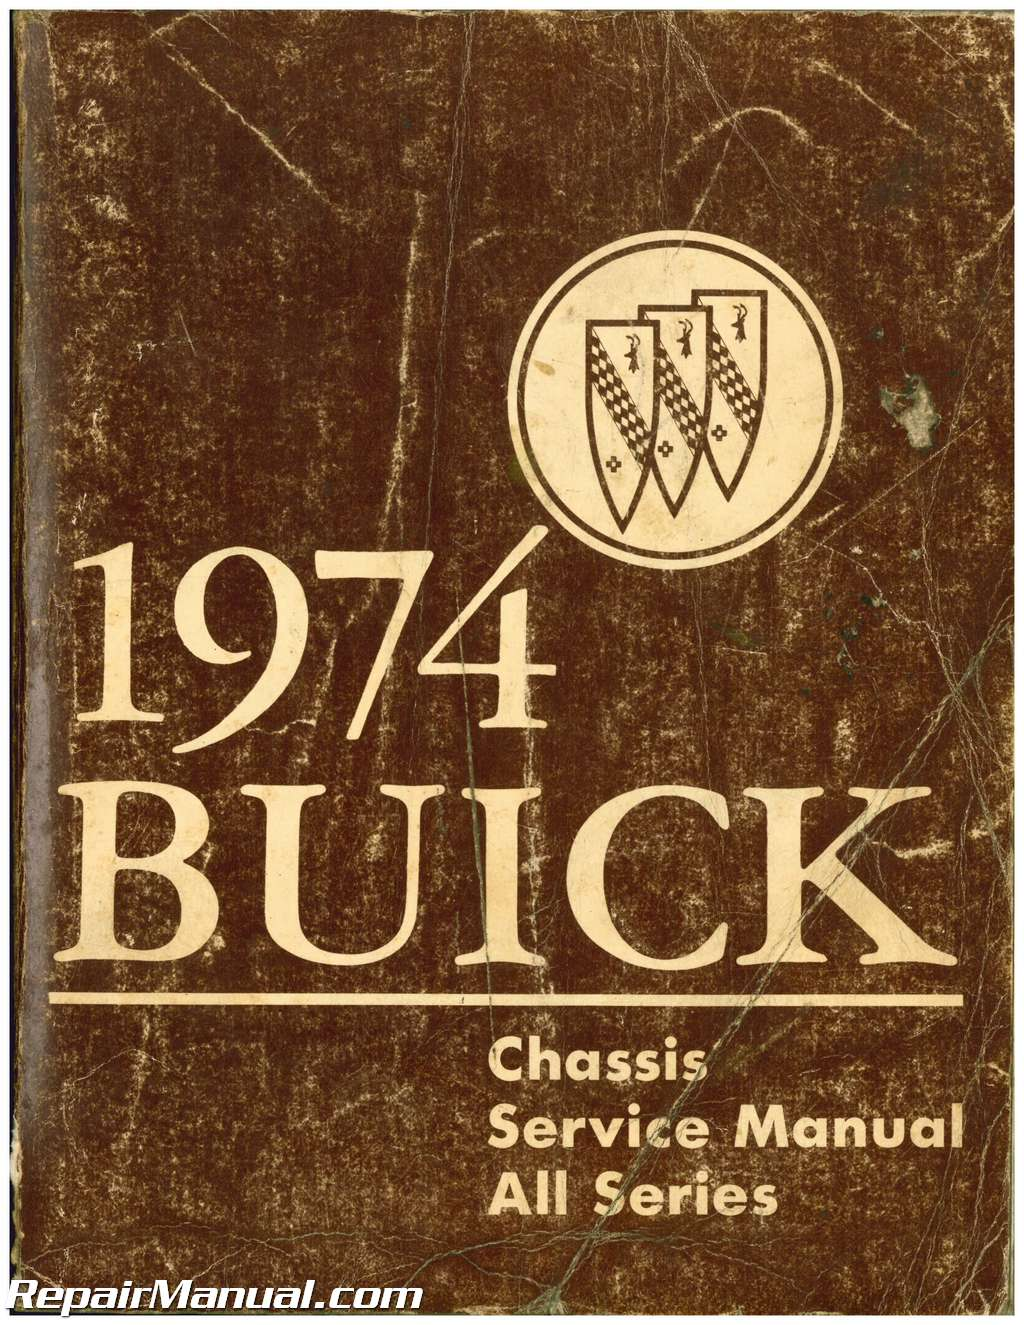 used 1974 buick chassis service manual rh repairmanual com buick service manual pdf buick service manual pdf